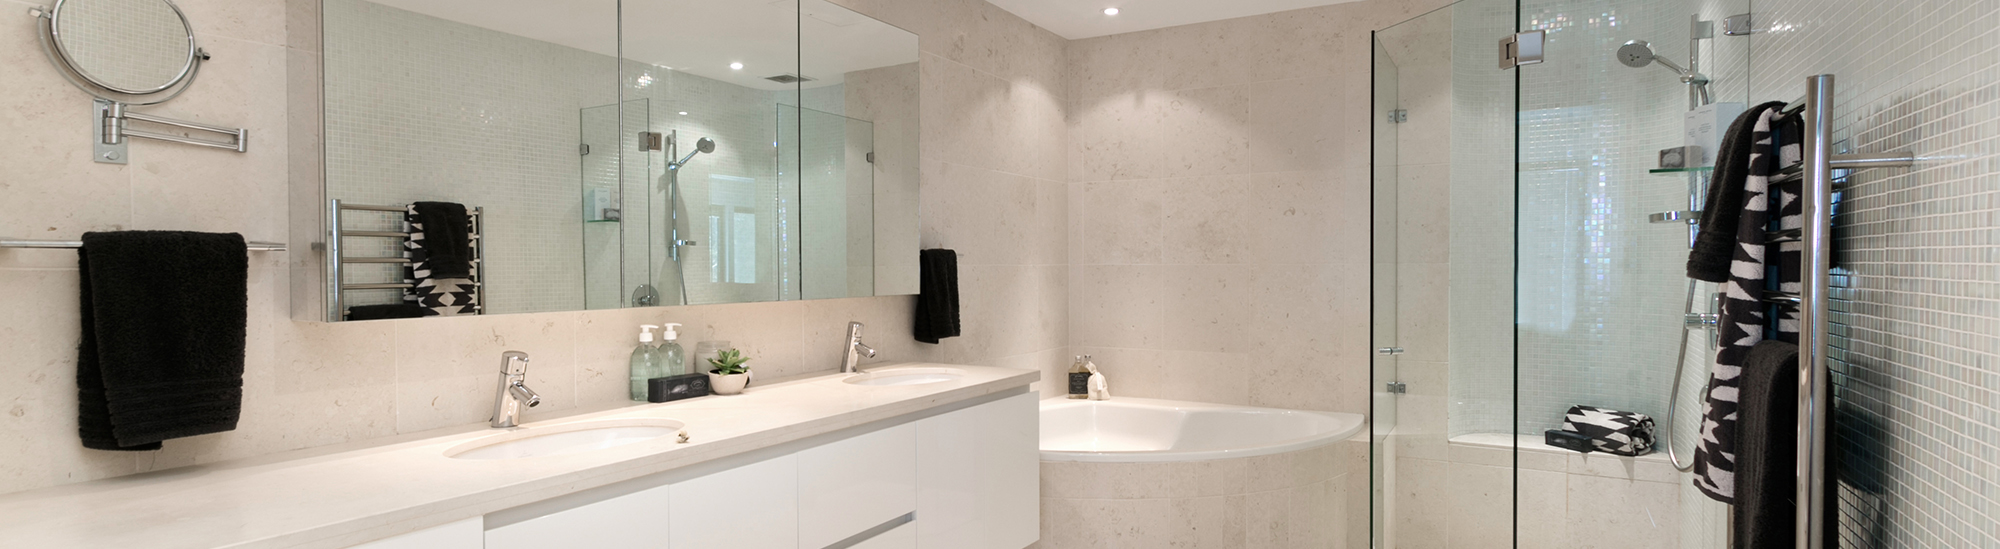 Glass Countertops Calgary Home Glass Mirrors Custom Frames House Of Mirrors Glass